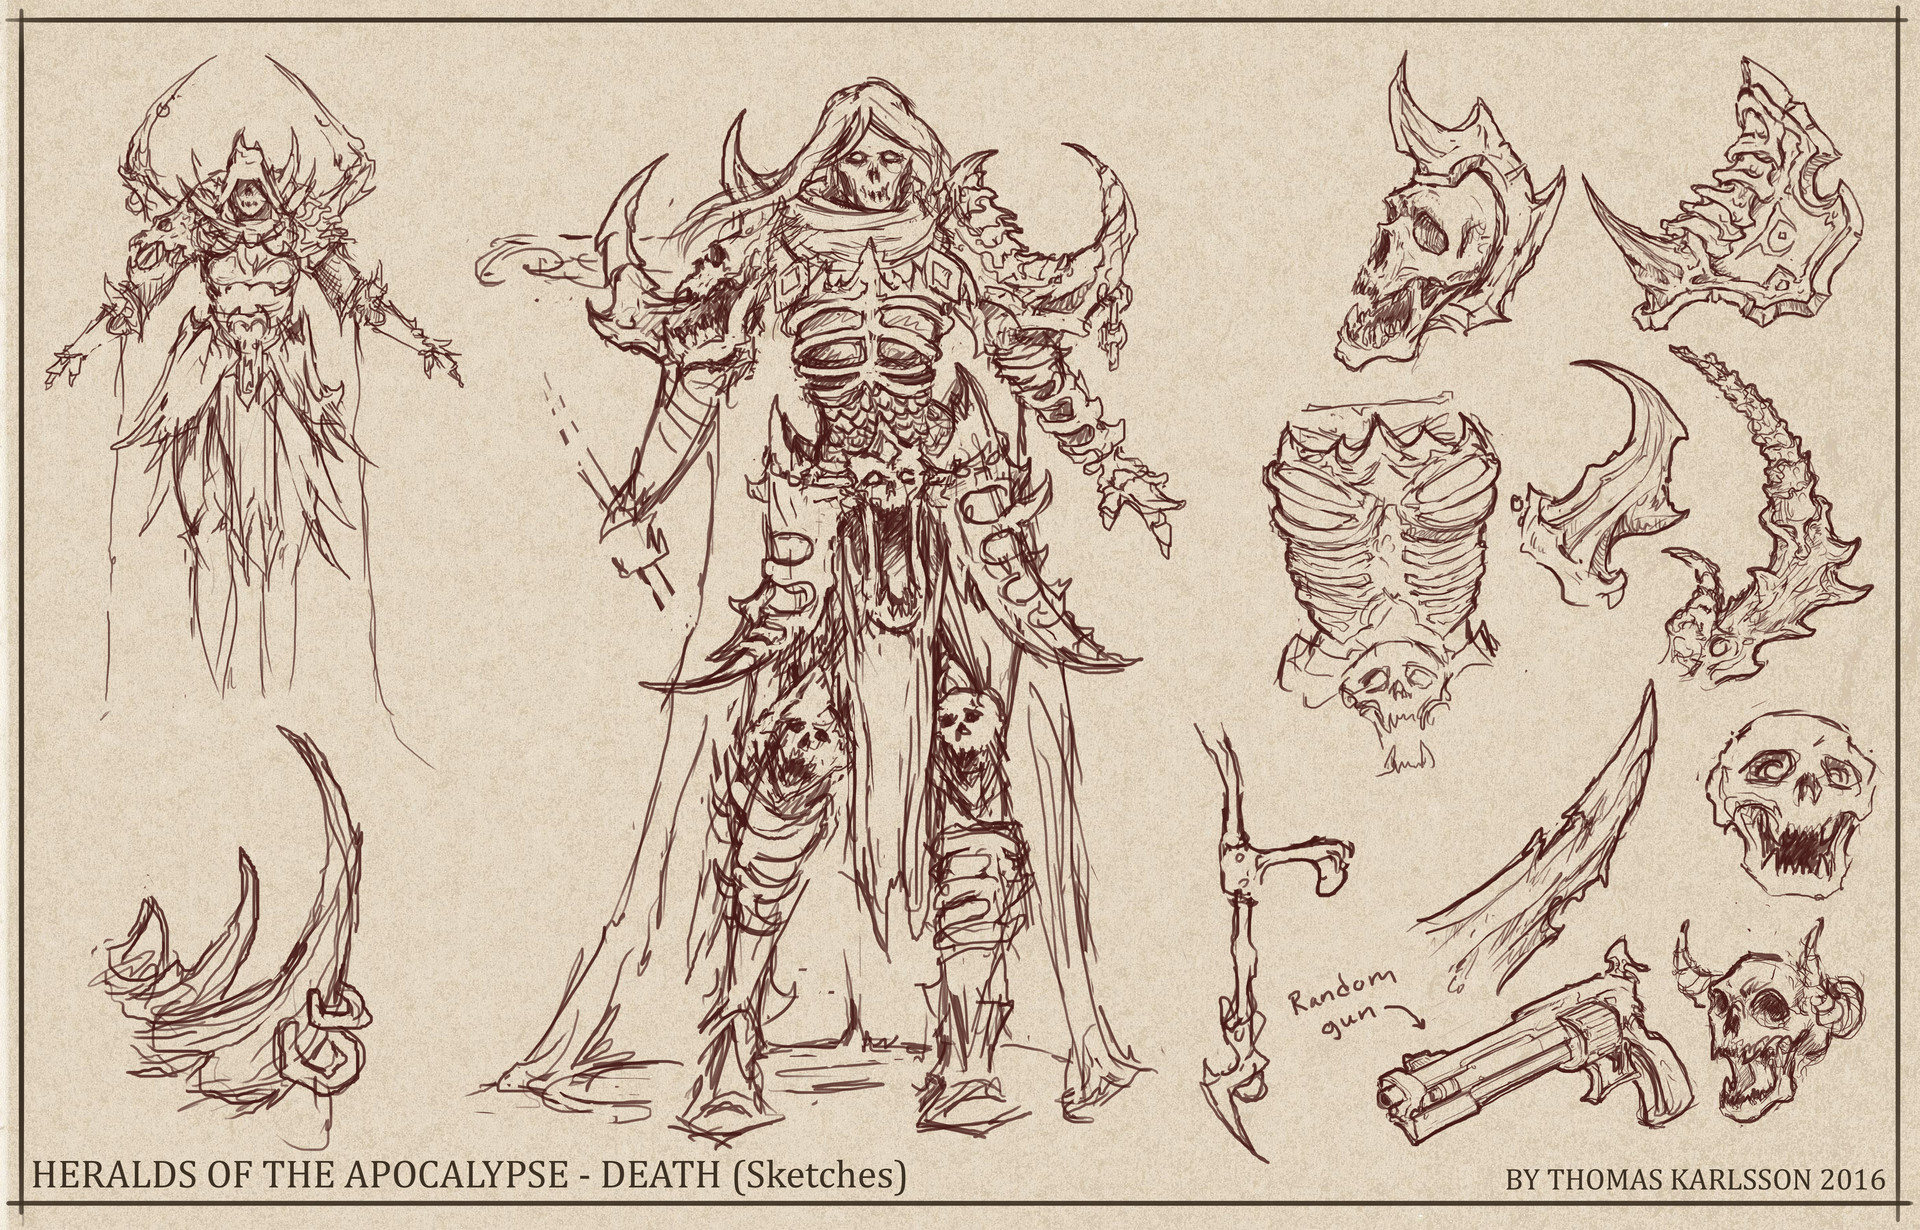 Thomas karlsson deathsketches2